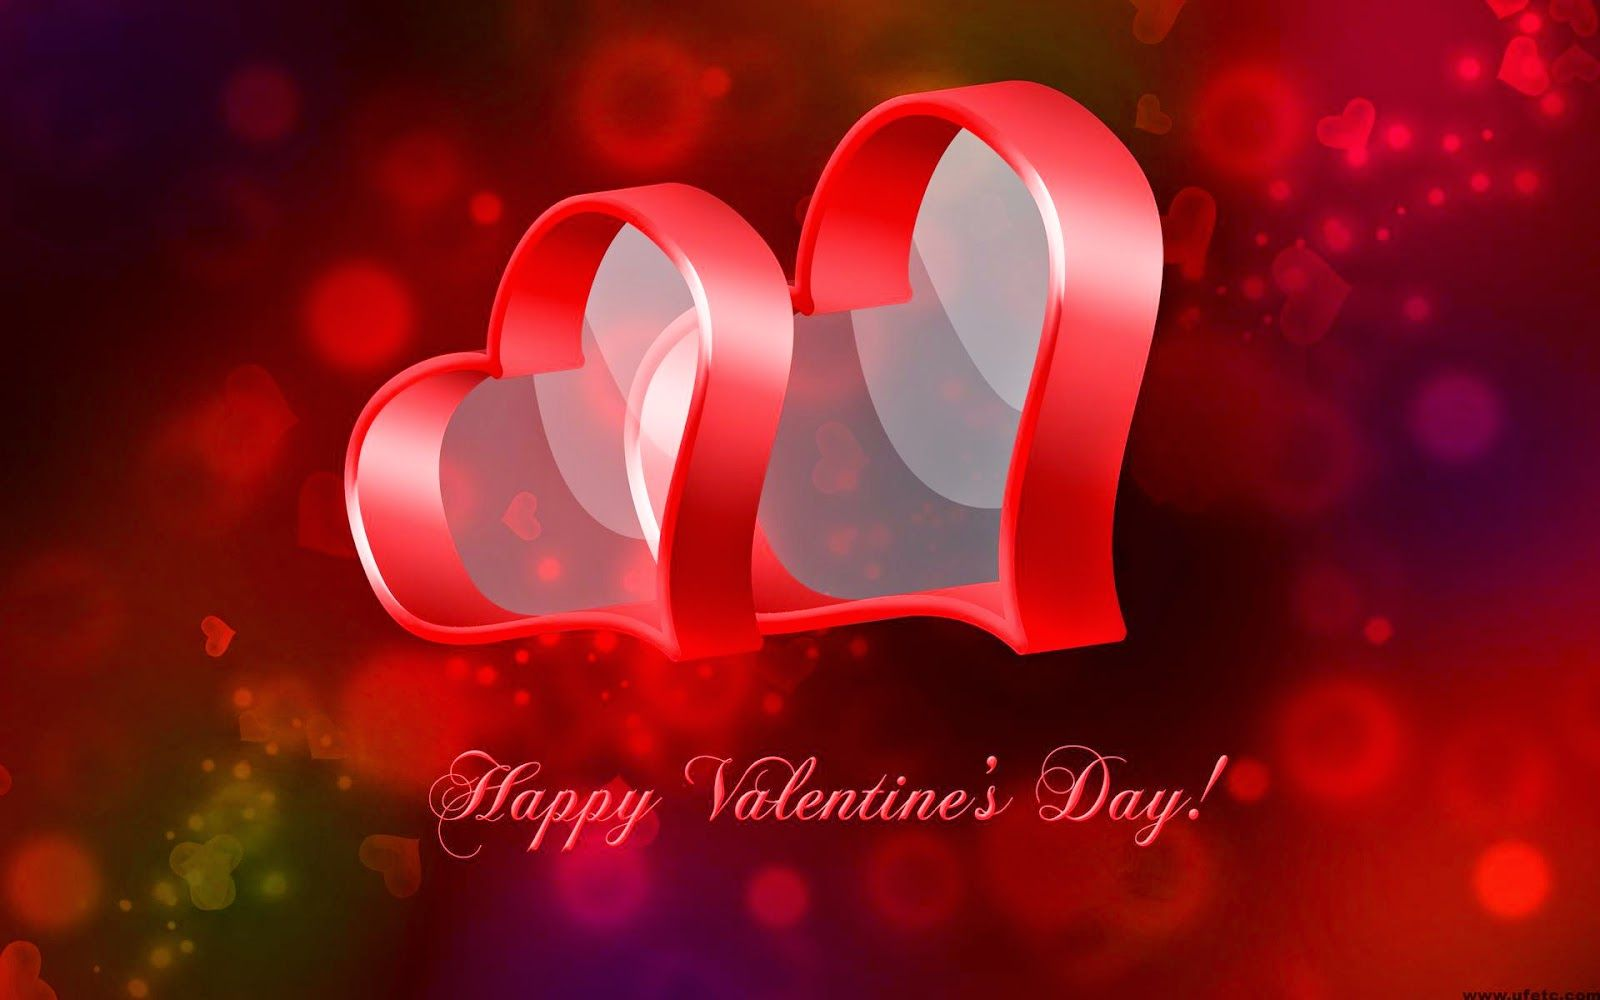 happy valentines day beautiful wallpaper 2015 | happy valentines